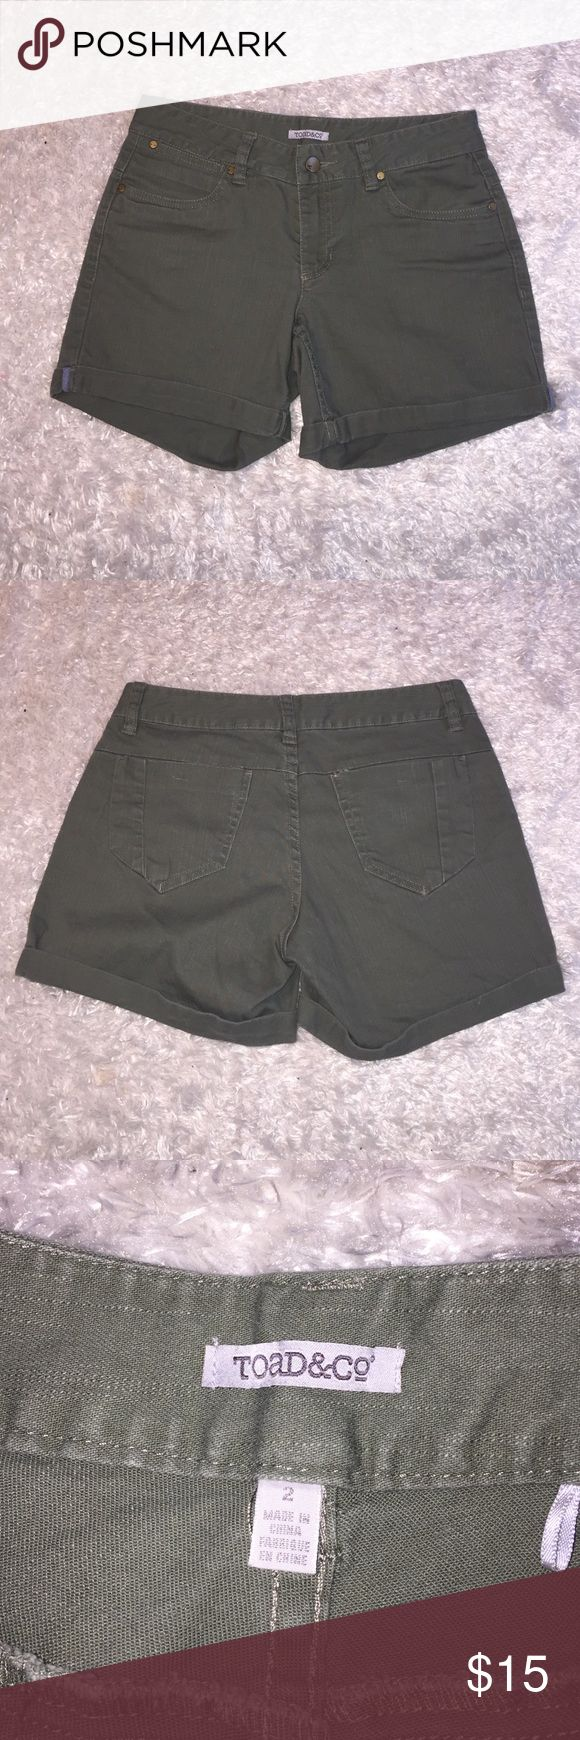 """Toad & Co Army Green Shorts Size 2, slightly high waisted shorts! In great condition. Inseam: 5"""". Feel free to ask any questions! Toad & Co Shorts"""